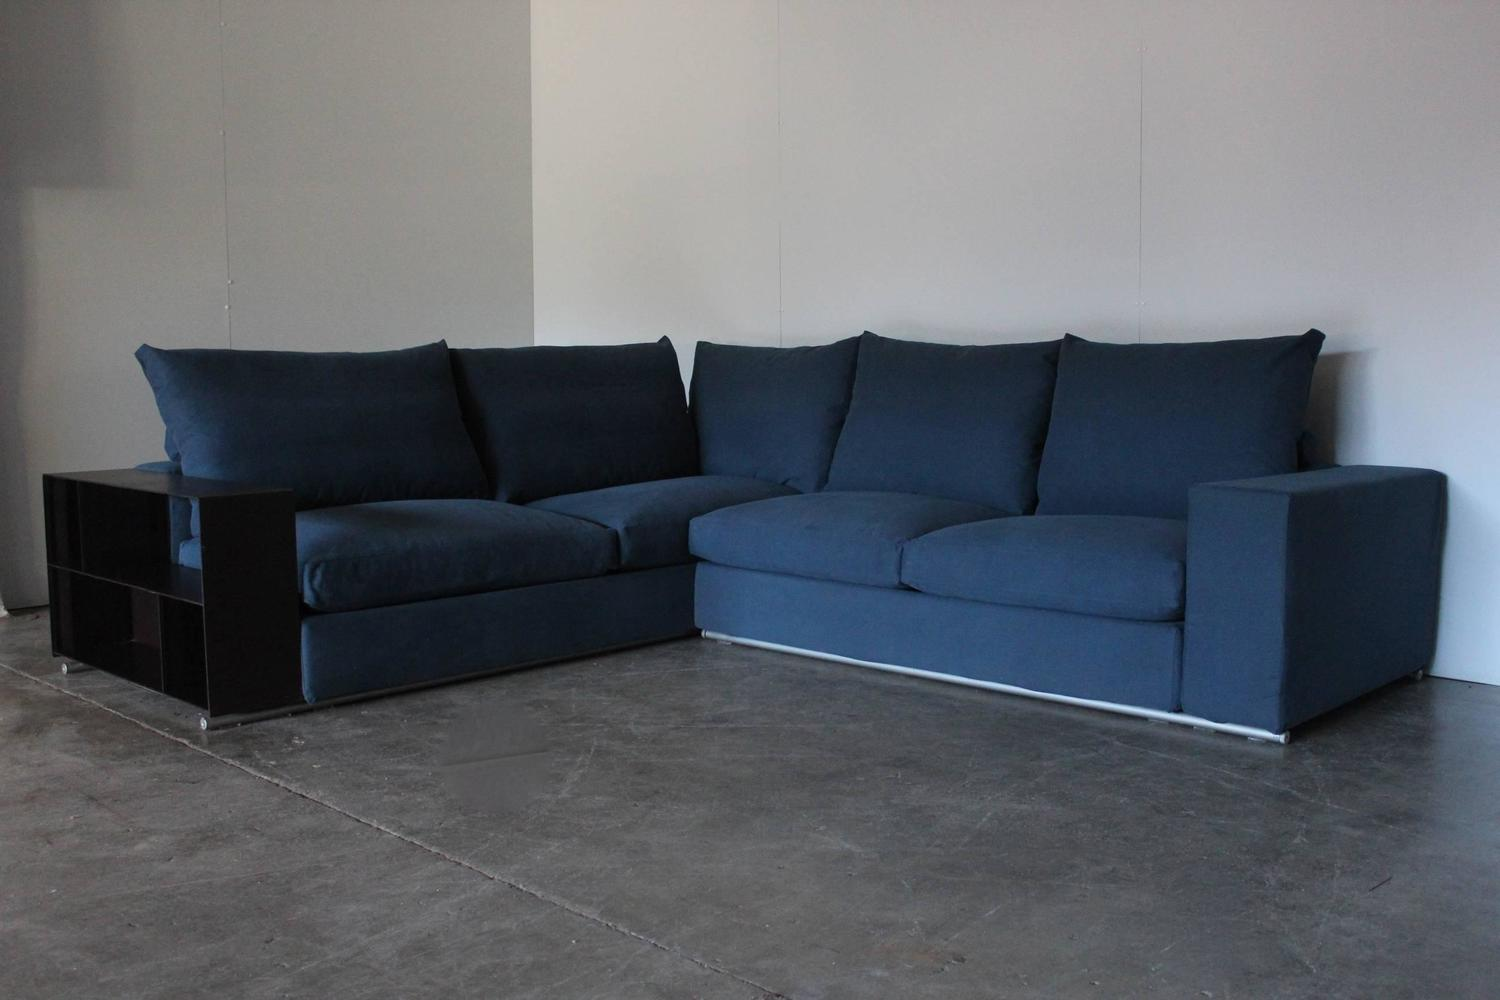 flexform groundpiece sectional l shape sofa in blue linen by antonio citterio for sale at 1stdibs. Black Bedroom Furniture Sets. Home Design Ideas